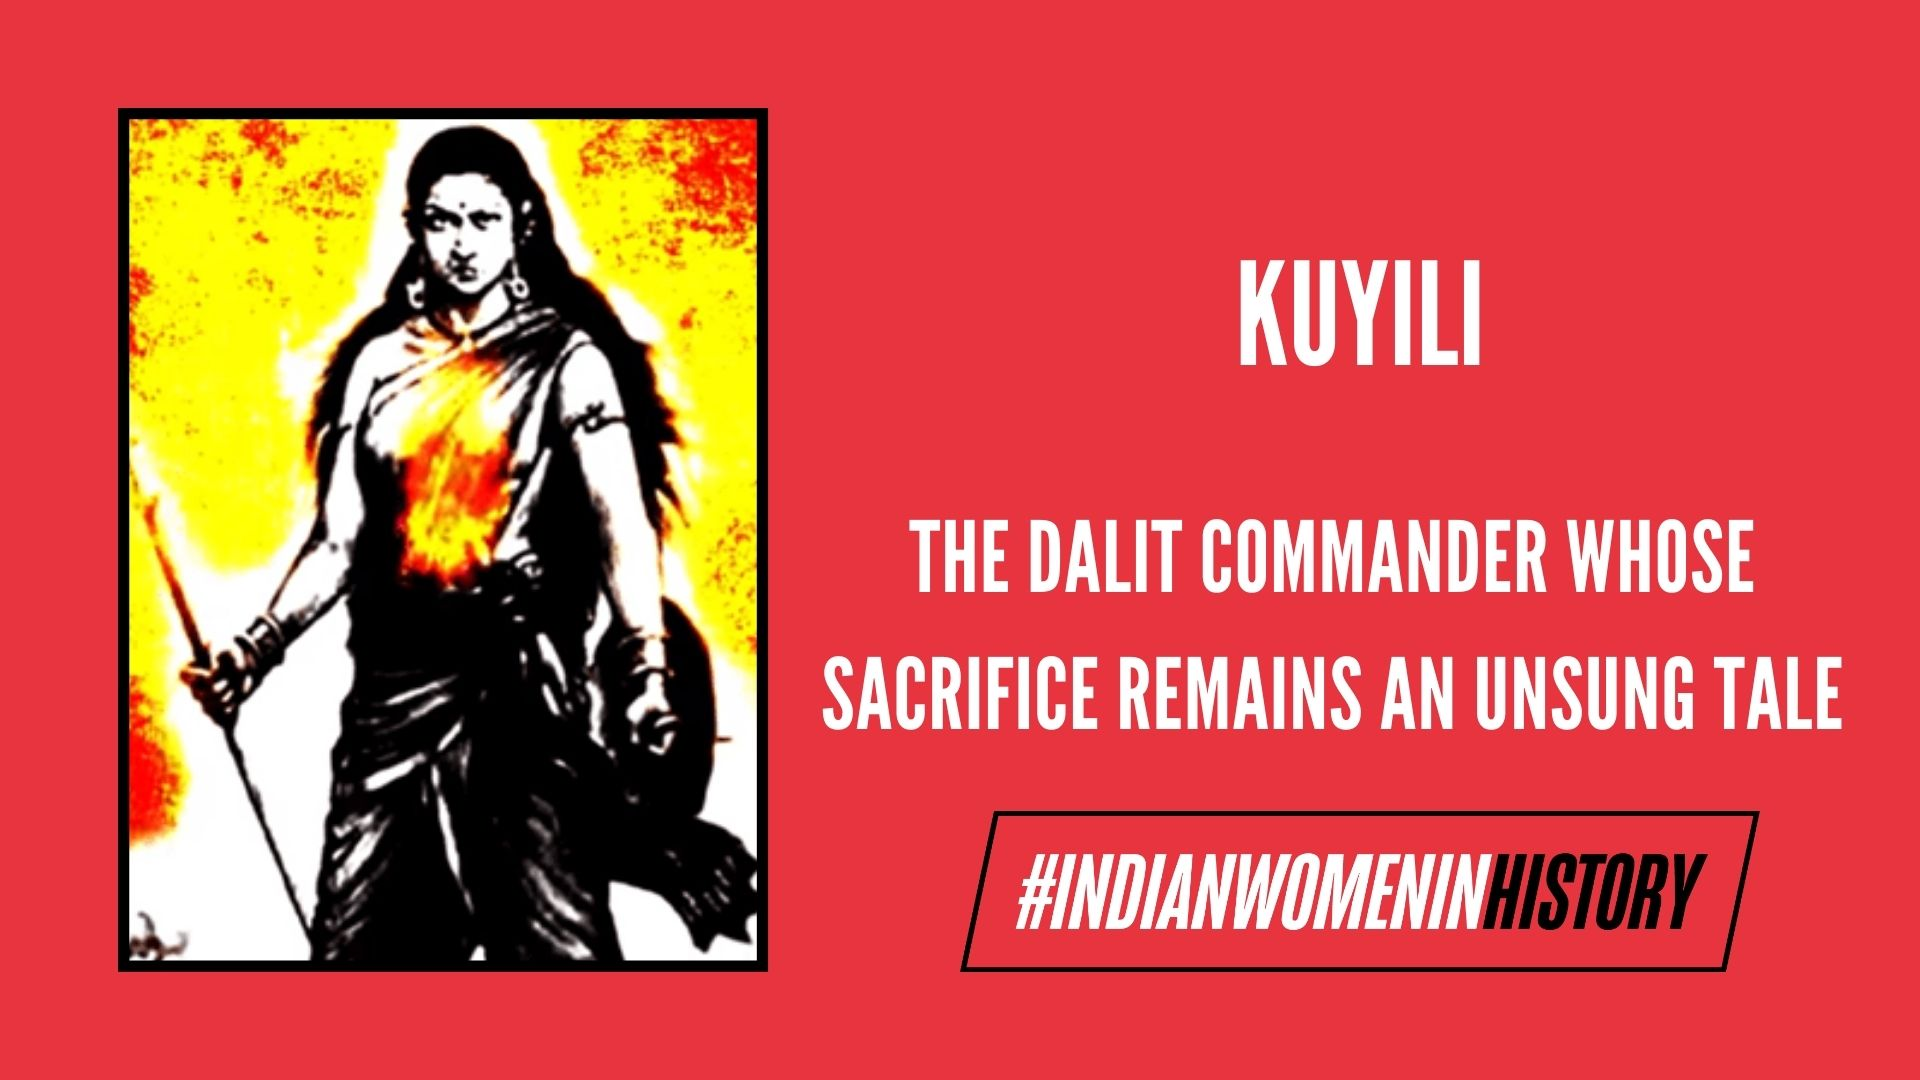 Kuyili's bravery and brilliance allowed Velu Nachiyar to not only win the battle against the British, but also reclaim her kingdom.